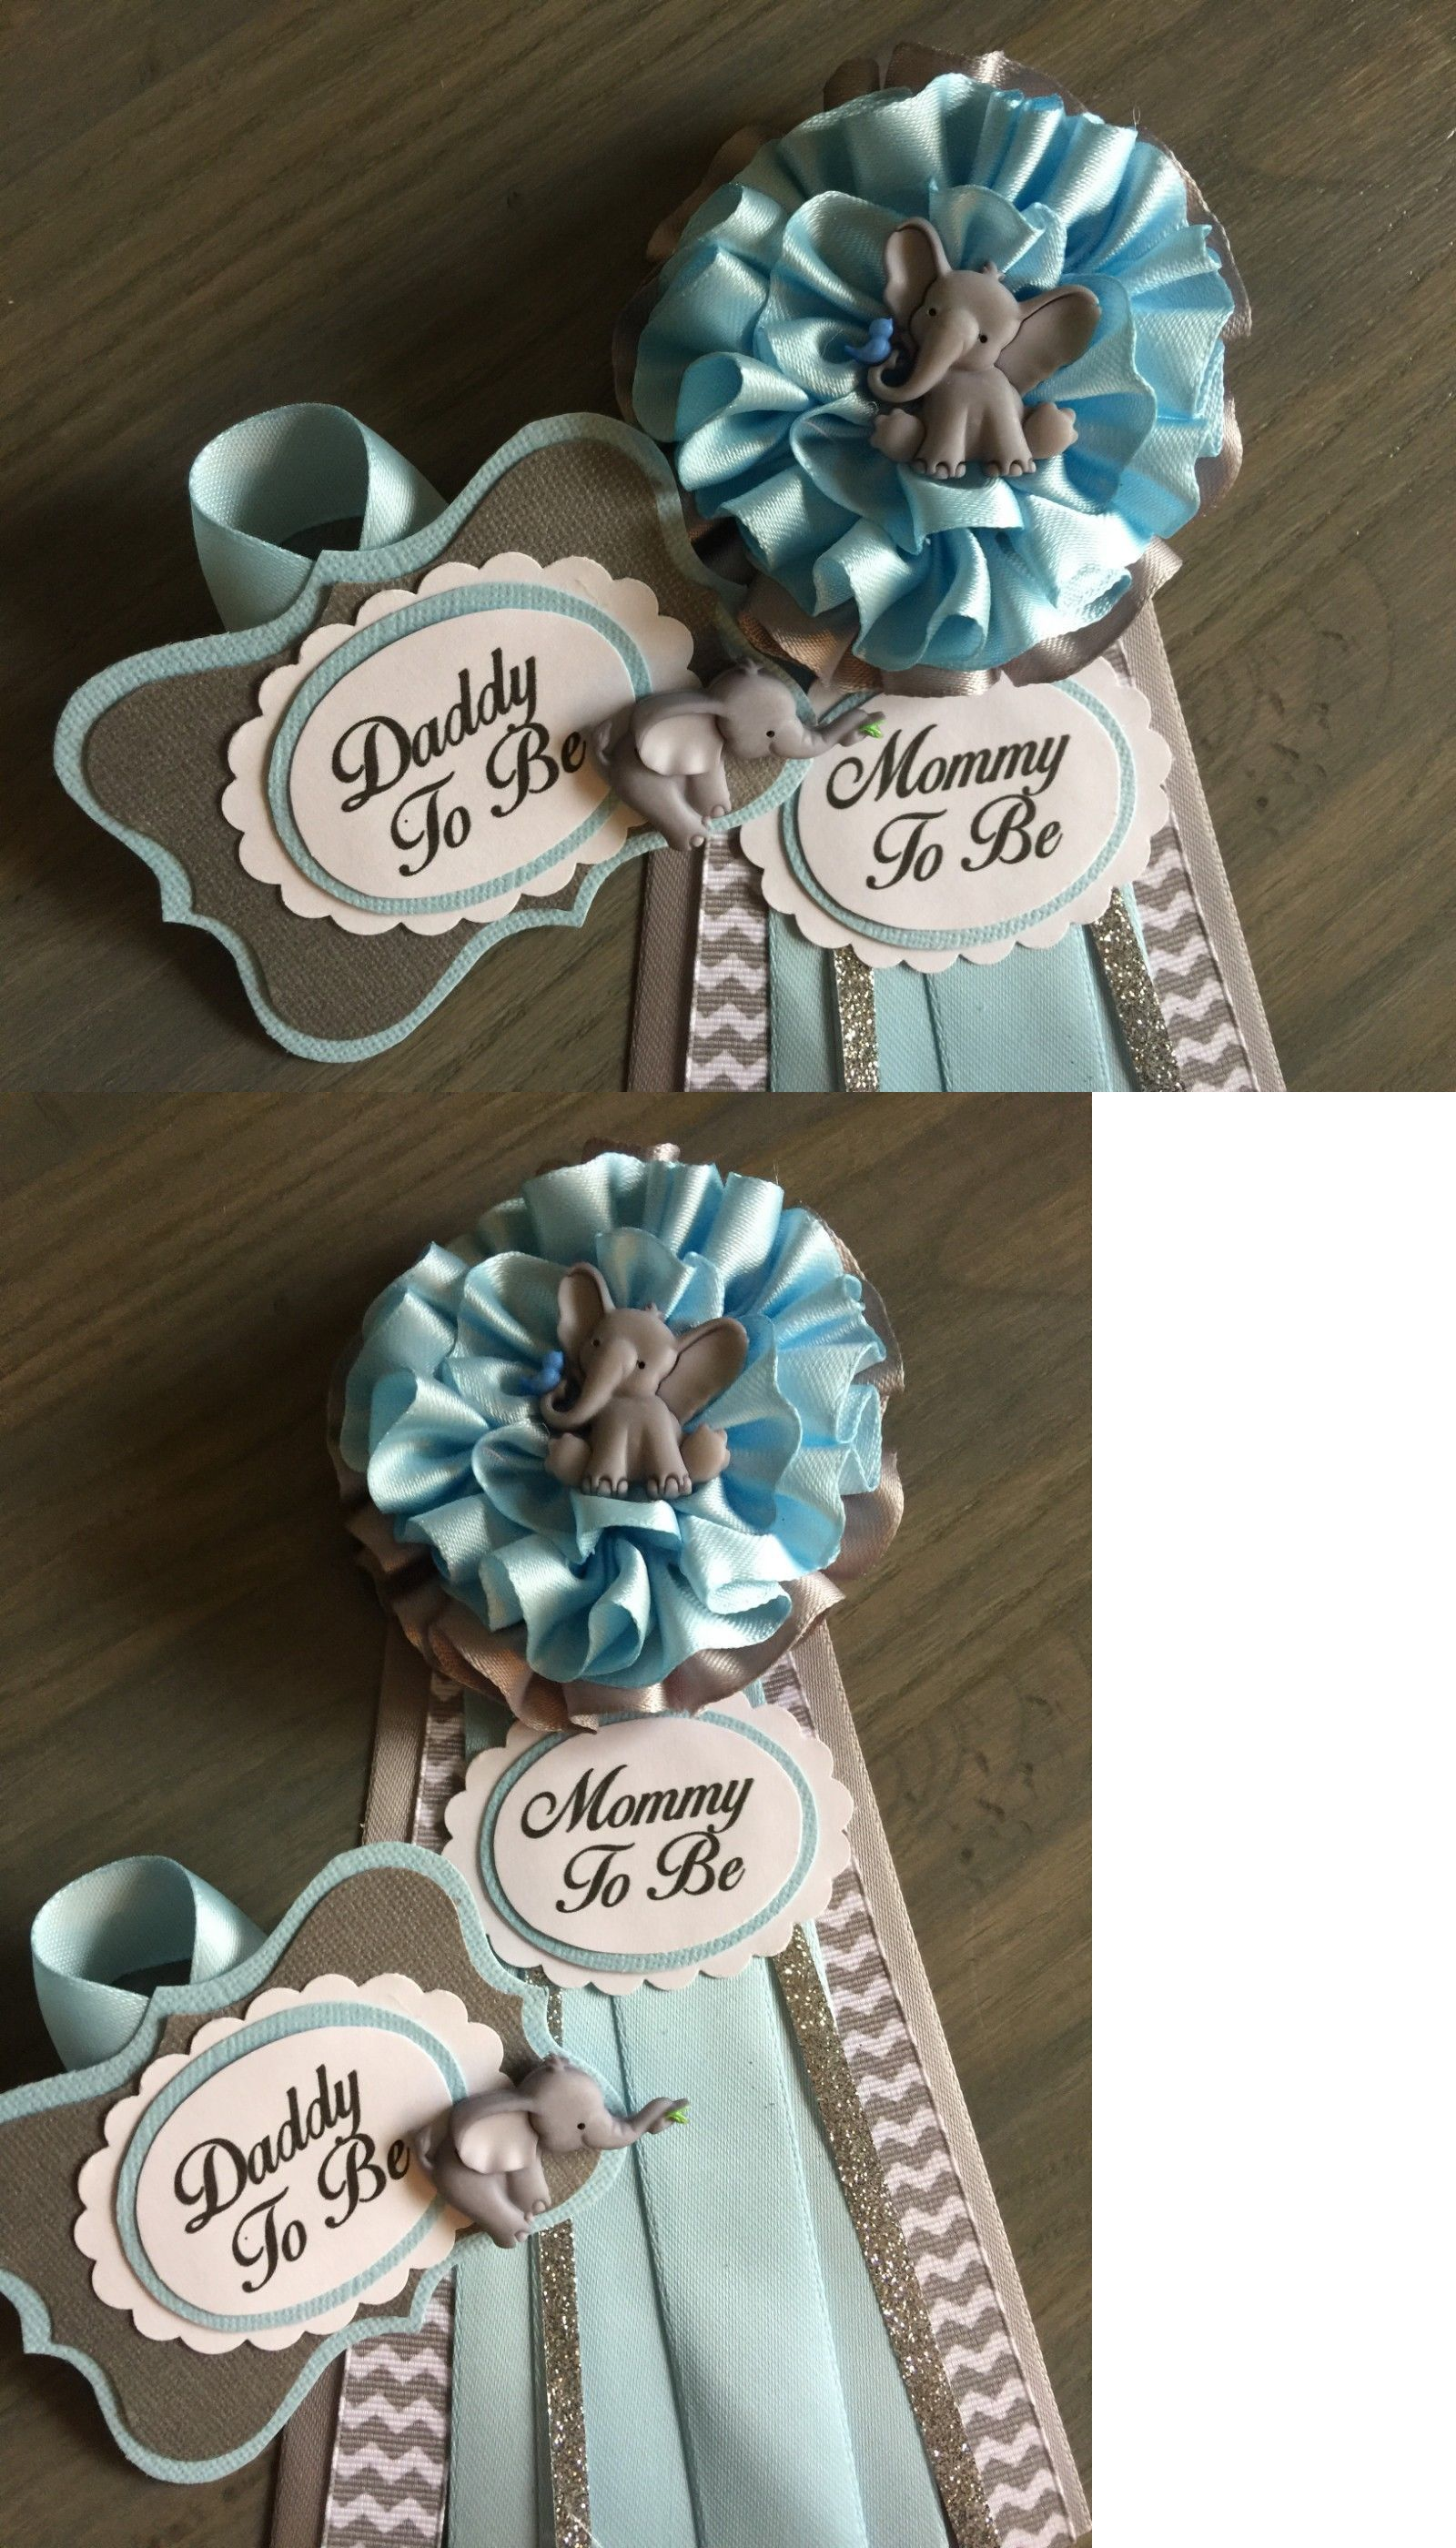 Baby Shower Pins For Mom And Dad : shower, Other, 1261:, Mommy, Daddy, Corsage, Elephant,Blue,Gray,Baby, Shower,Pin,, ONLY…, Shower, Corsage,, Shower,